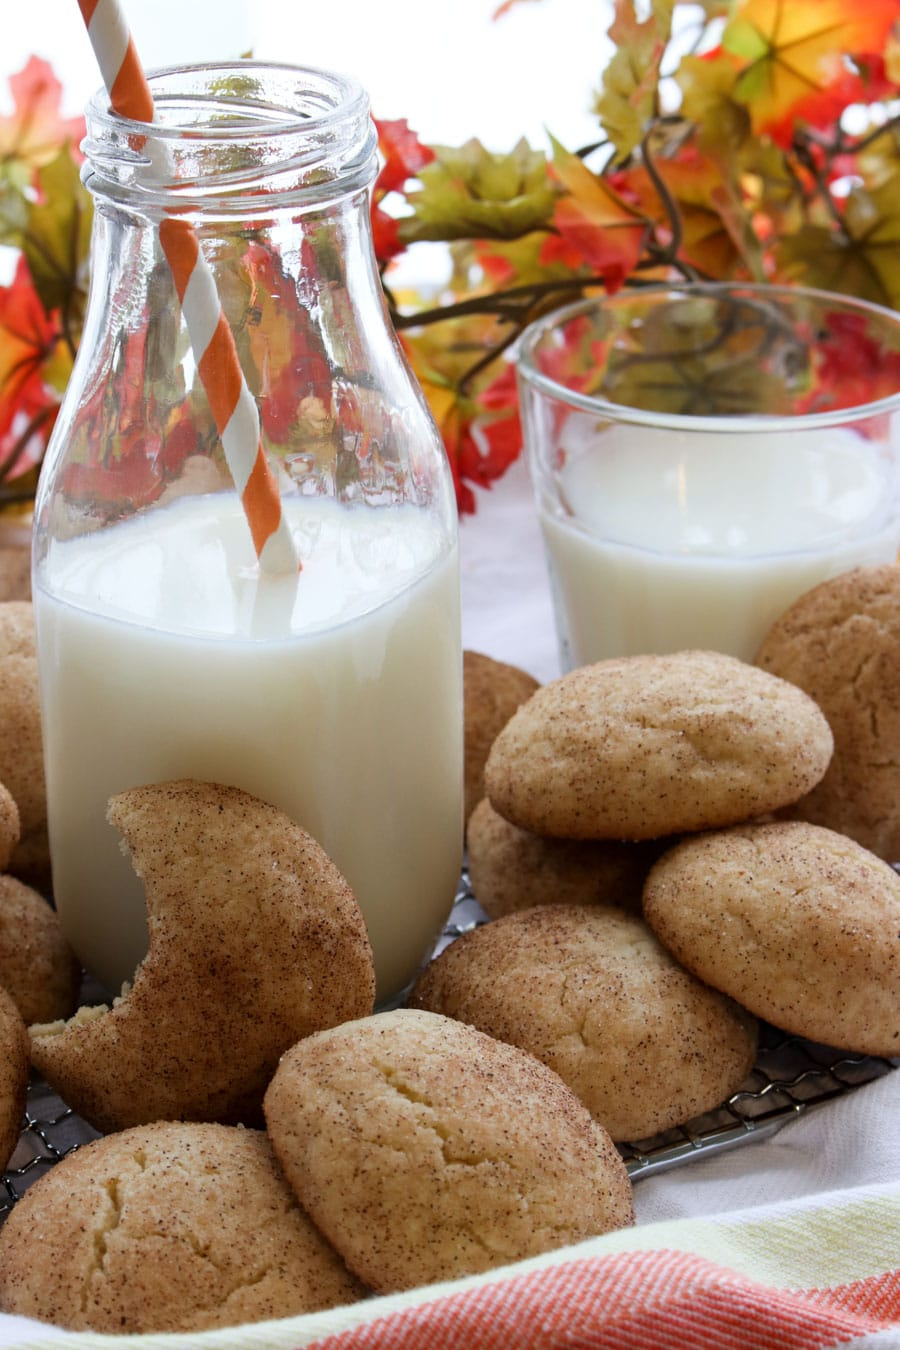 bottle of milk with orange straw and a glass of milk and cookies